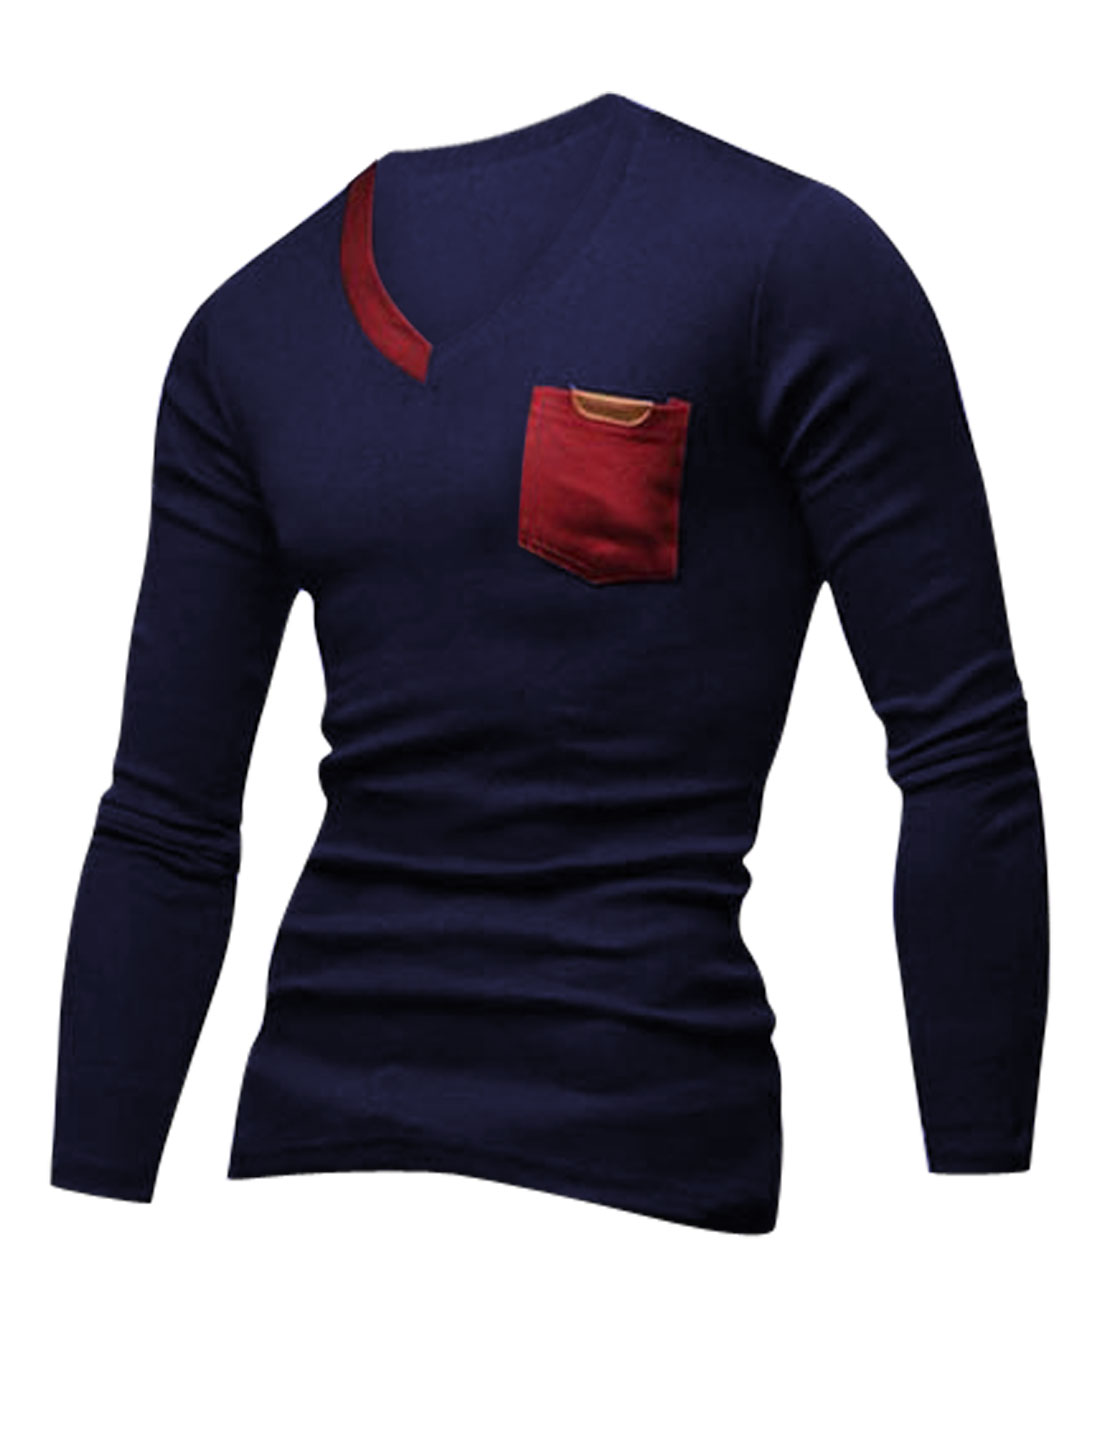 Men V Neck Long Sleeves Slipover Trendy T-Shirt Navy Blue Red M